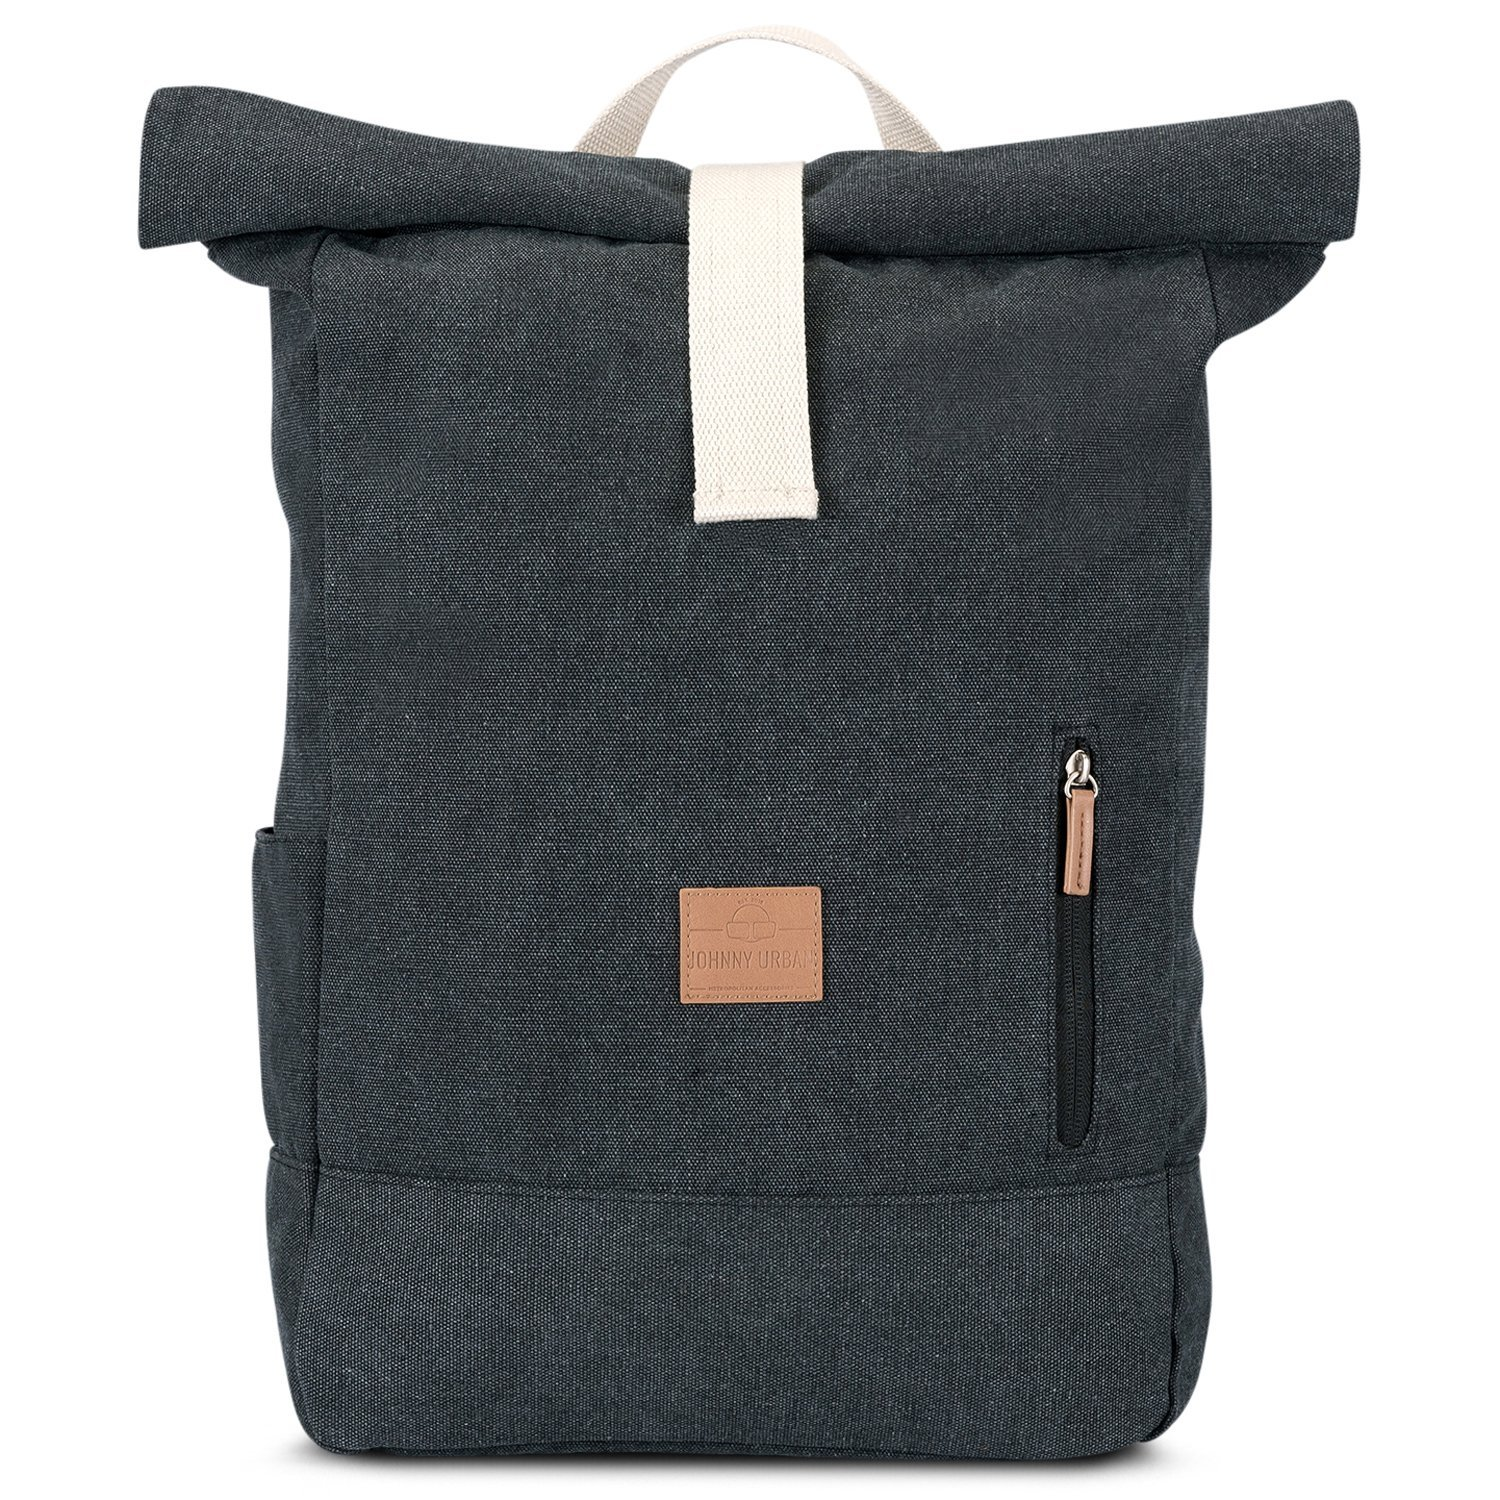 87770bc0e4fd Get Quotations · Johnny Urban Roll Top Backpack from Cotton Canvas - Black  - Durable Daypack for Men